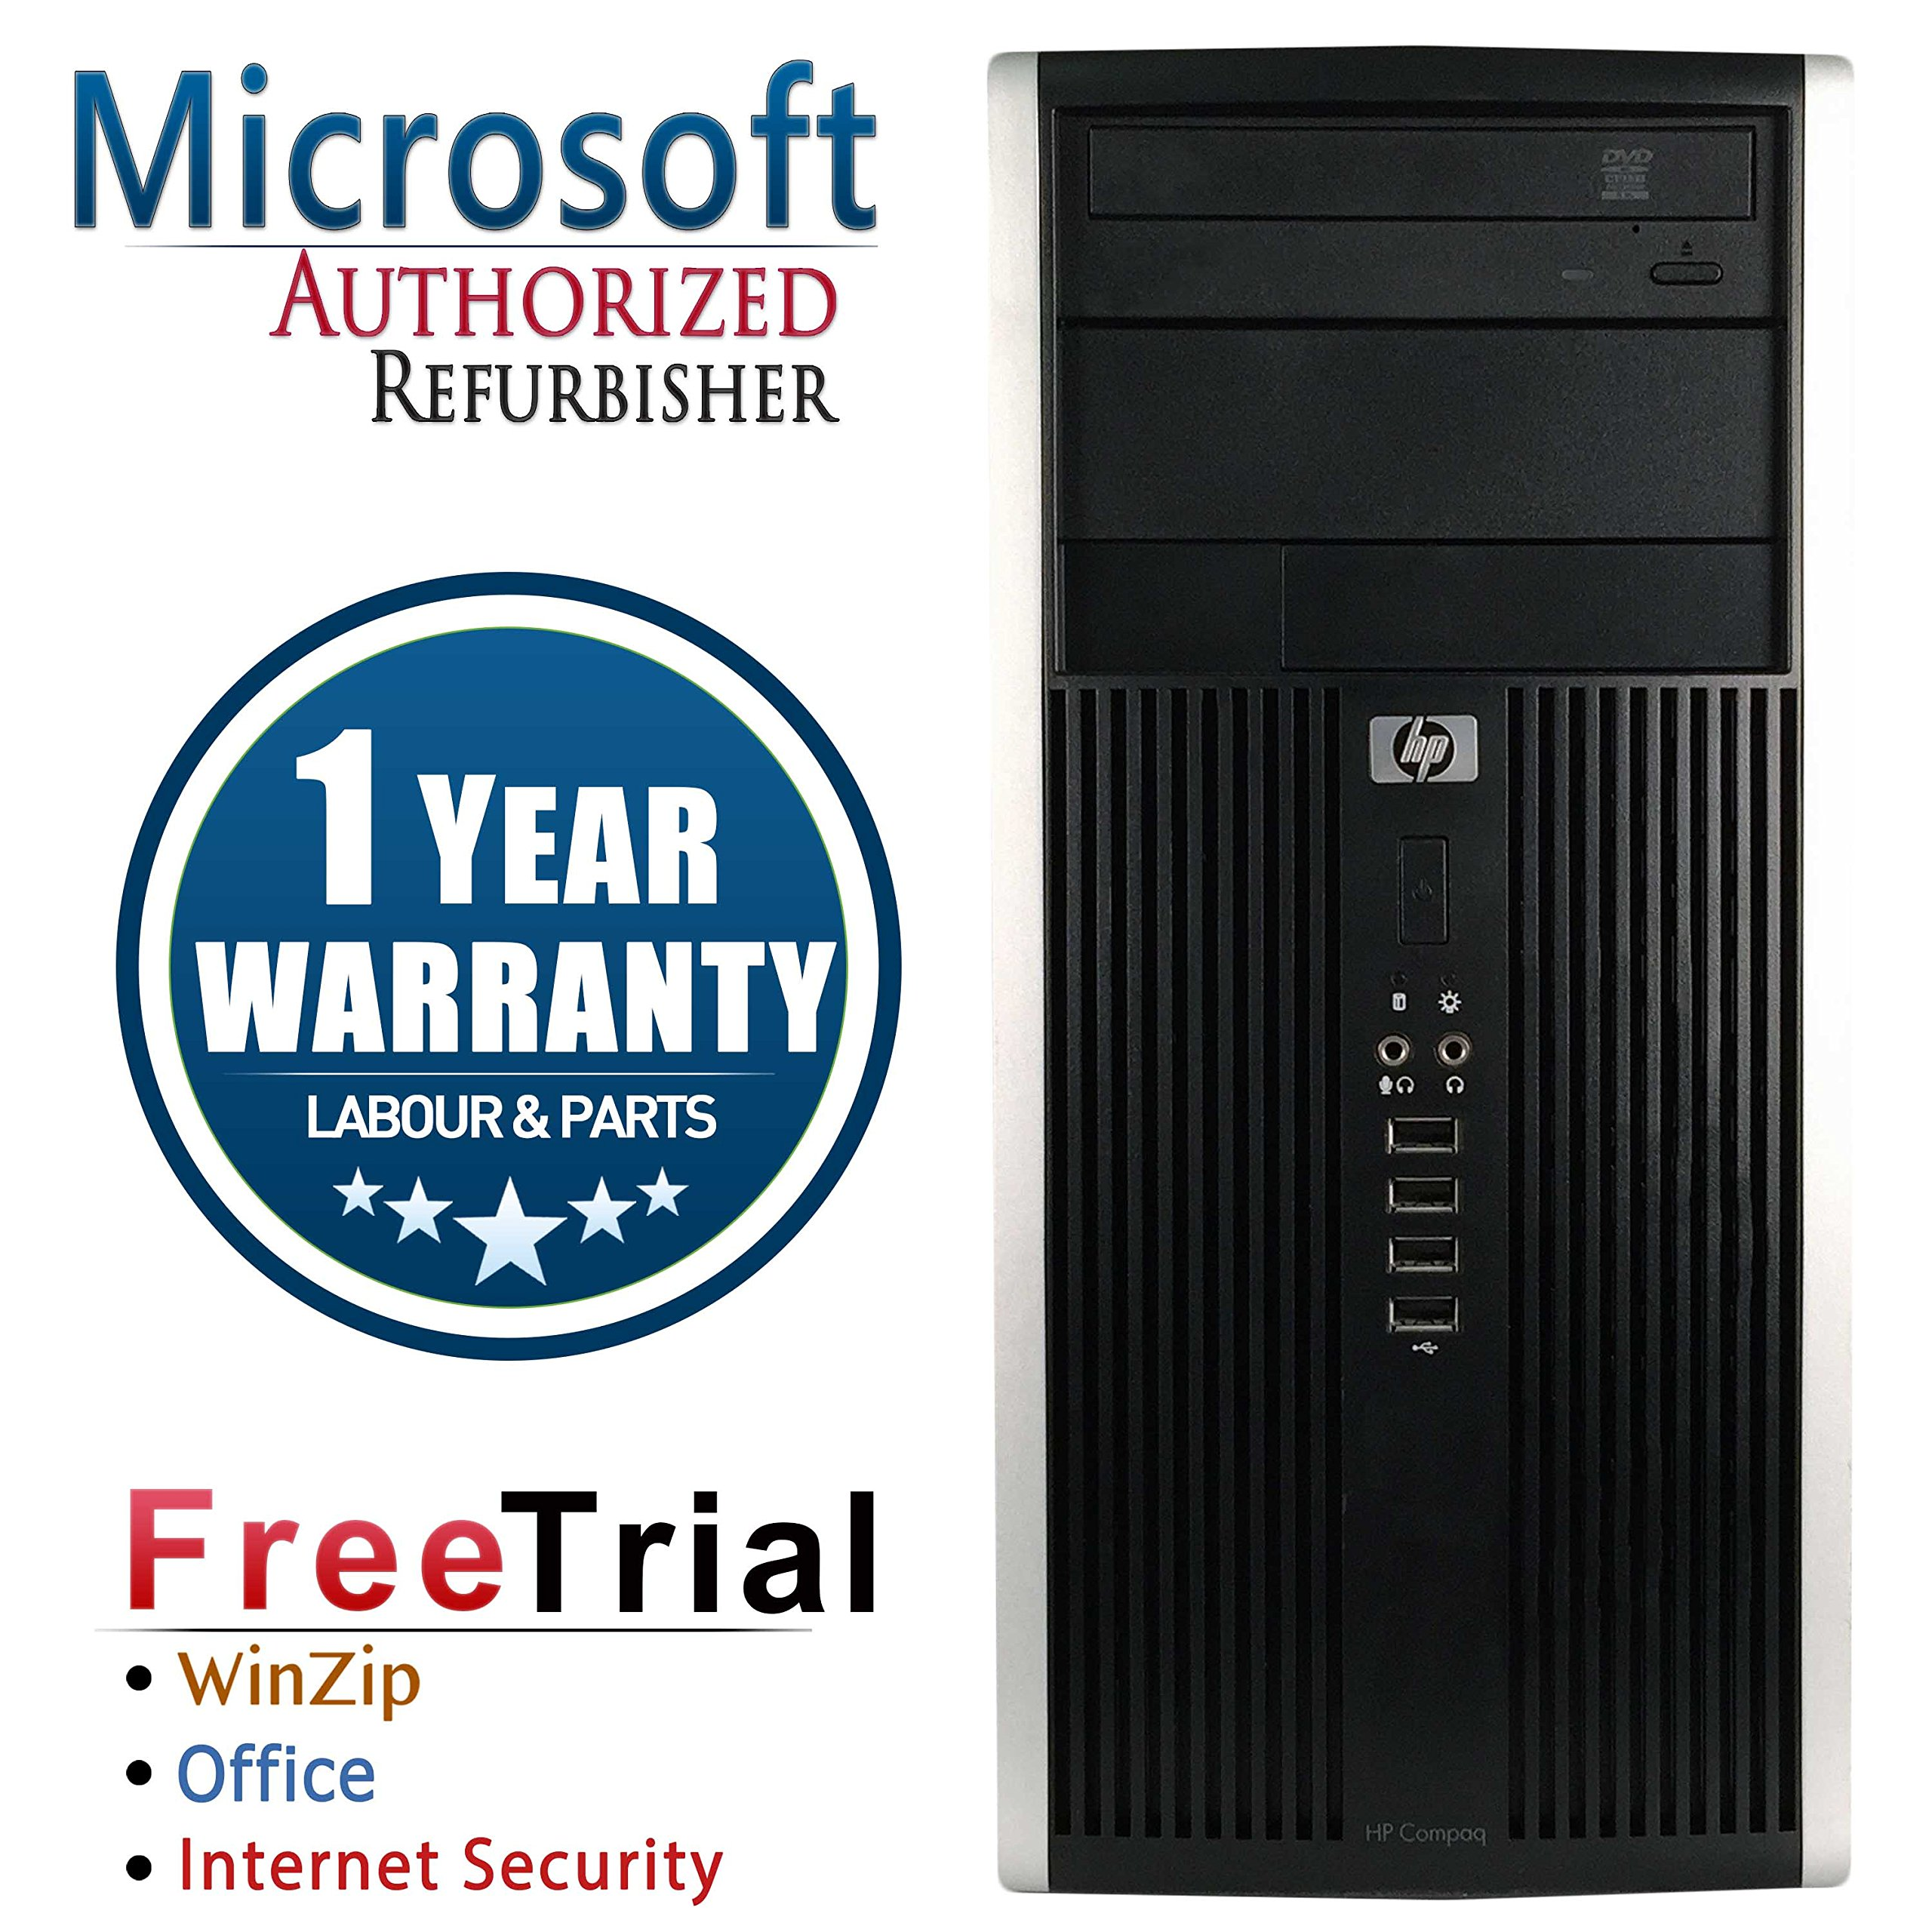 HP 6000 PRO Business High Performance Tower Desktop Computer PC (Intel C2D E8400 3.0G,8G RAM DDR3,1TB HDD,DVD-ROM,Windows 10 Professional)(Certified Refurbished) by AST Computer (Image #1)